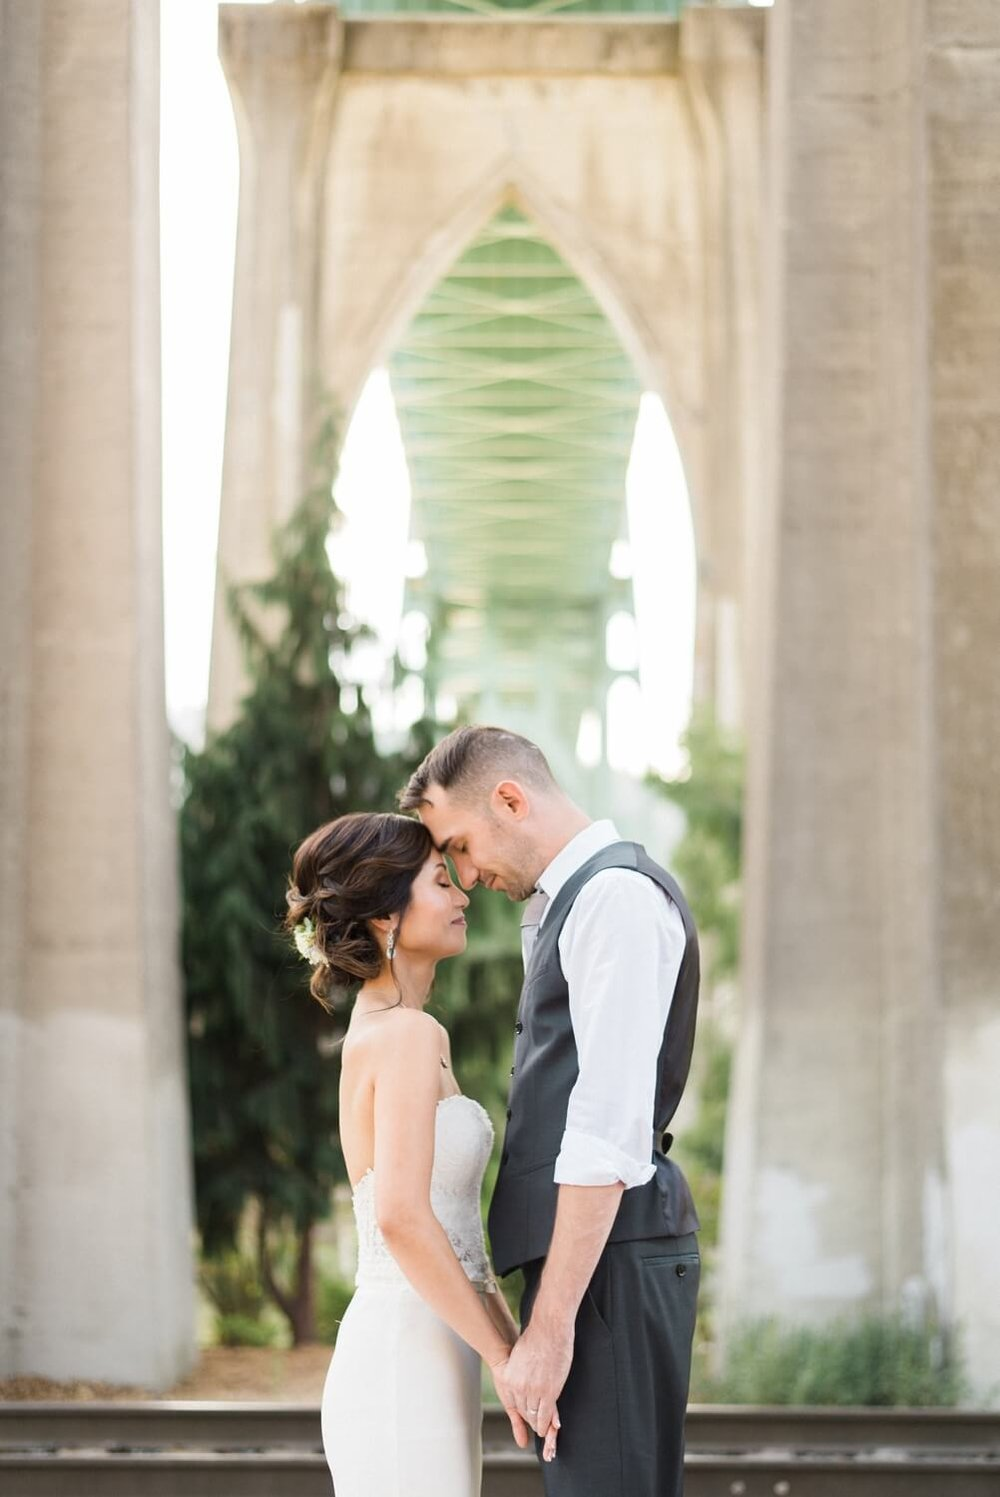 cathedral-park-wedding-urban-studio-portland-shelley-marie-photo-158_cr.jpg